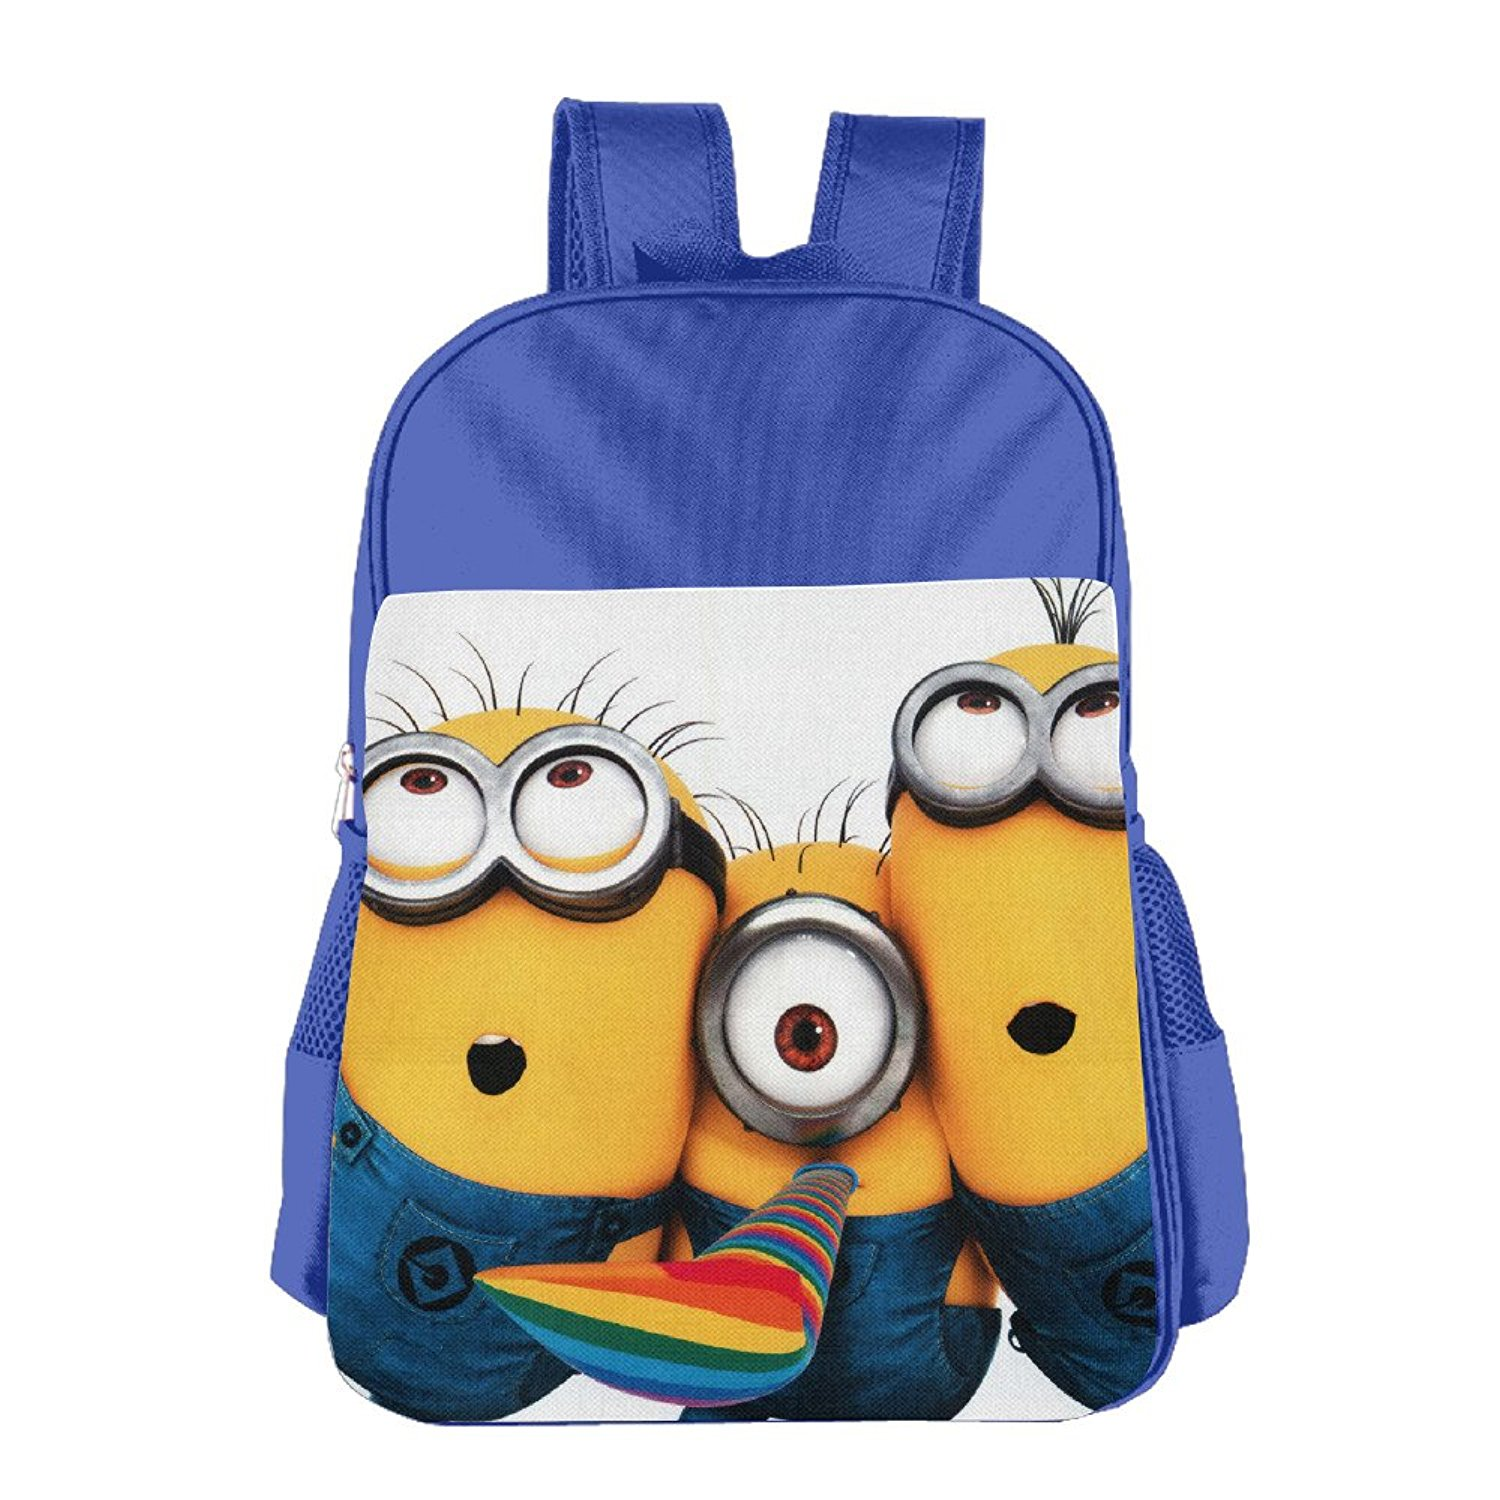 Despicable Me 3 Movie Collection Kids School Bagpack Bag RoyalBlue